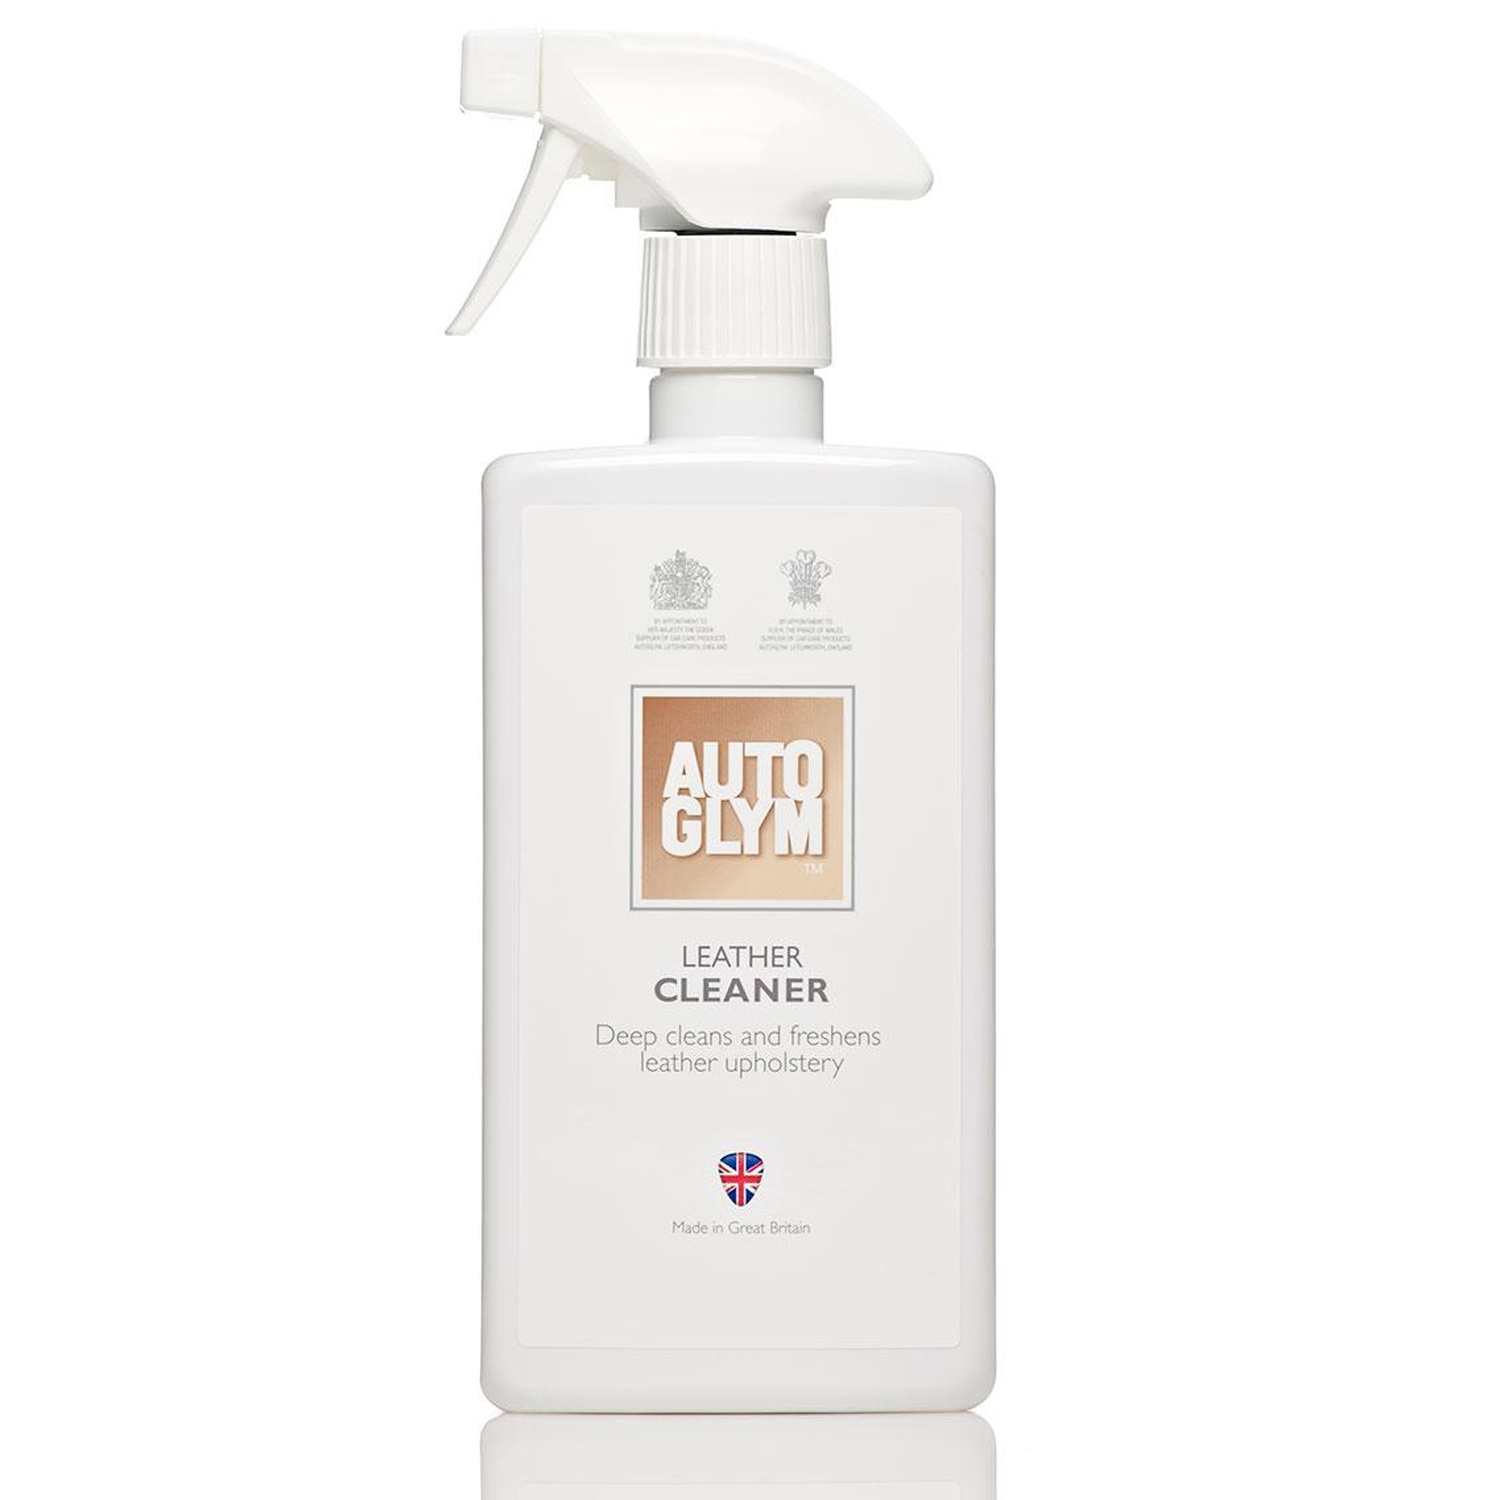 Image of Autoglym 500ml Leather Cleaner Lc500